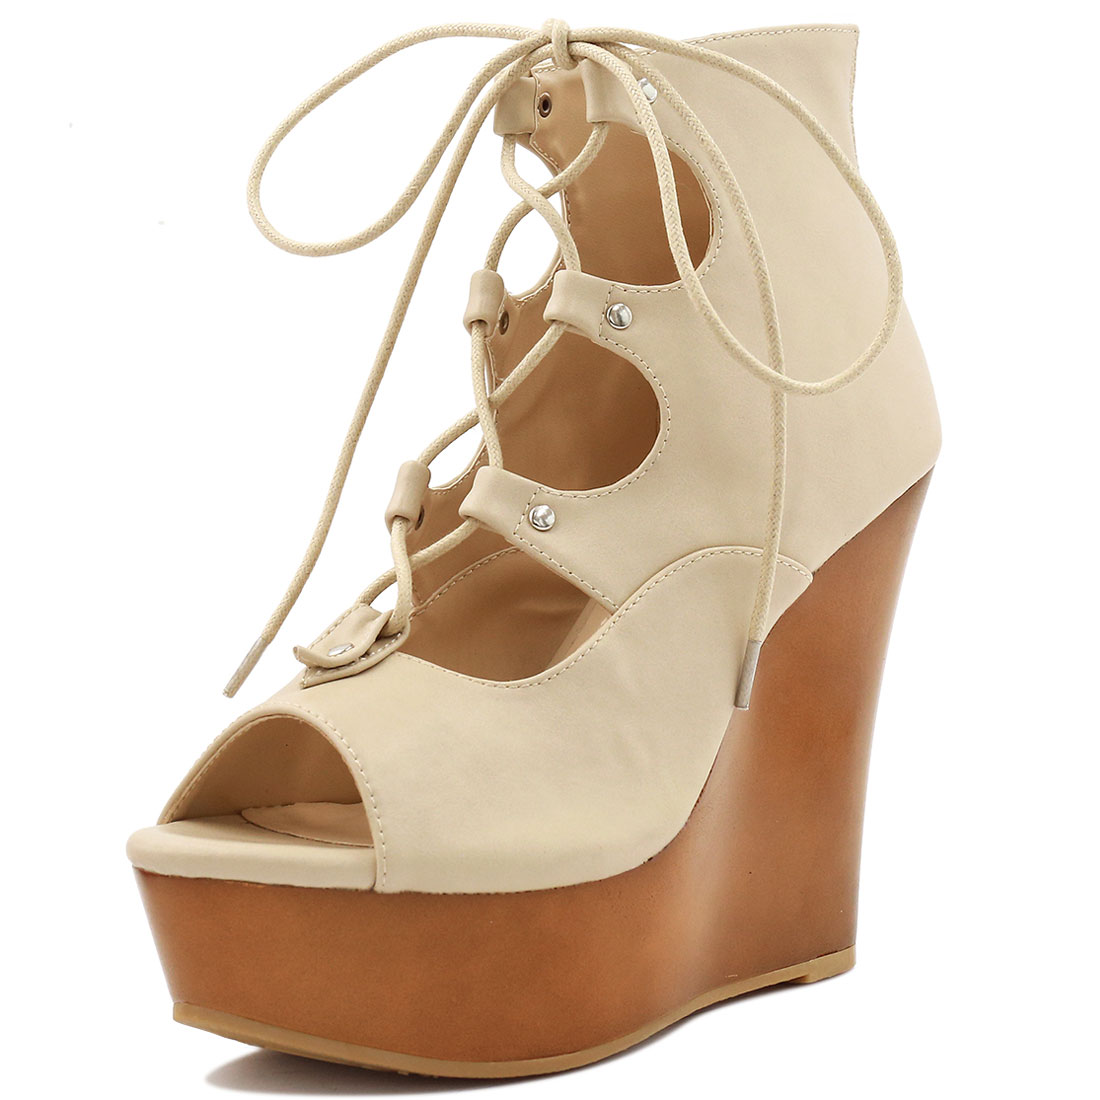 Woman Peep Toe Lace-Up Cutout Platform Wedge Sandals Beige US 8